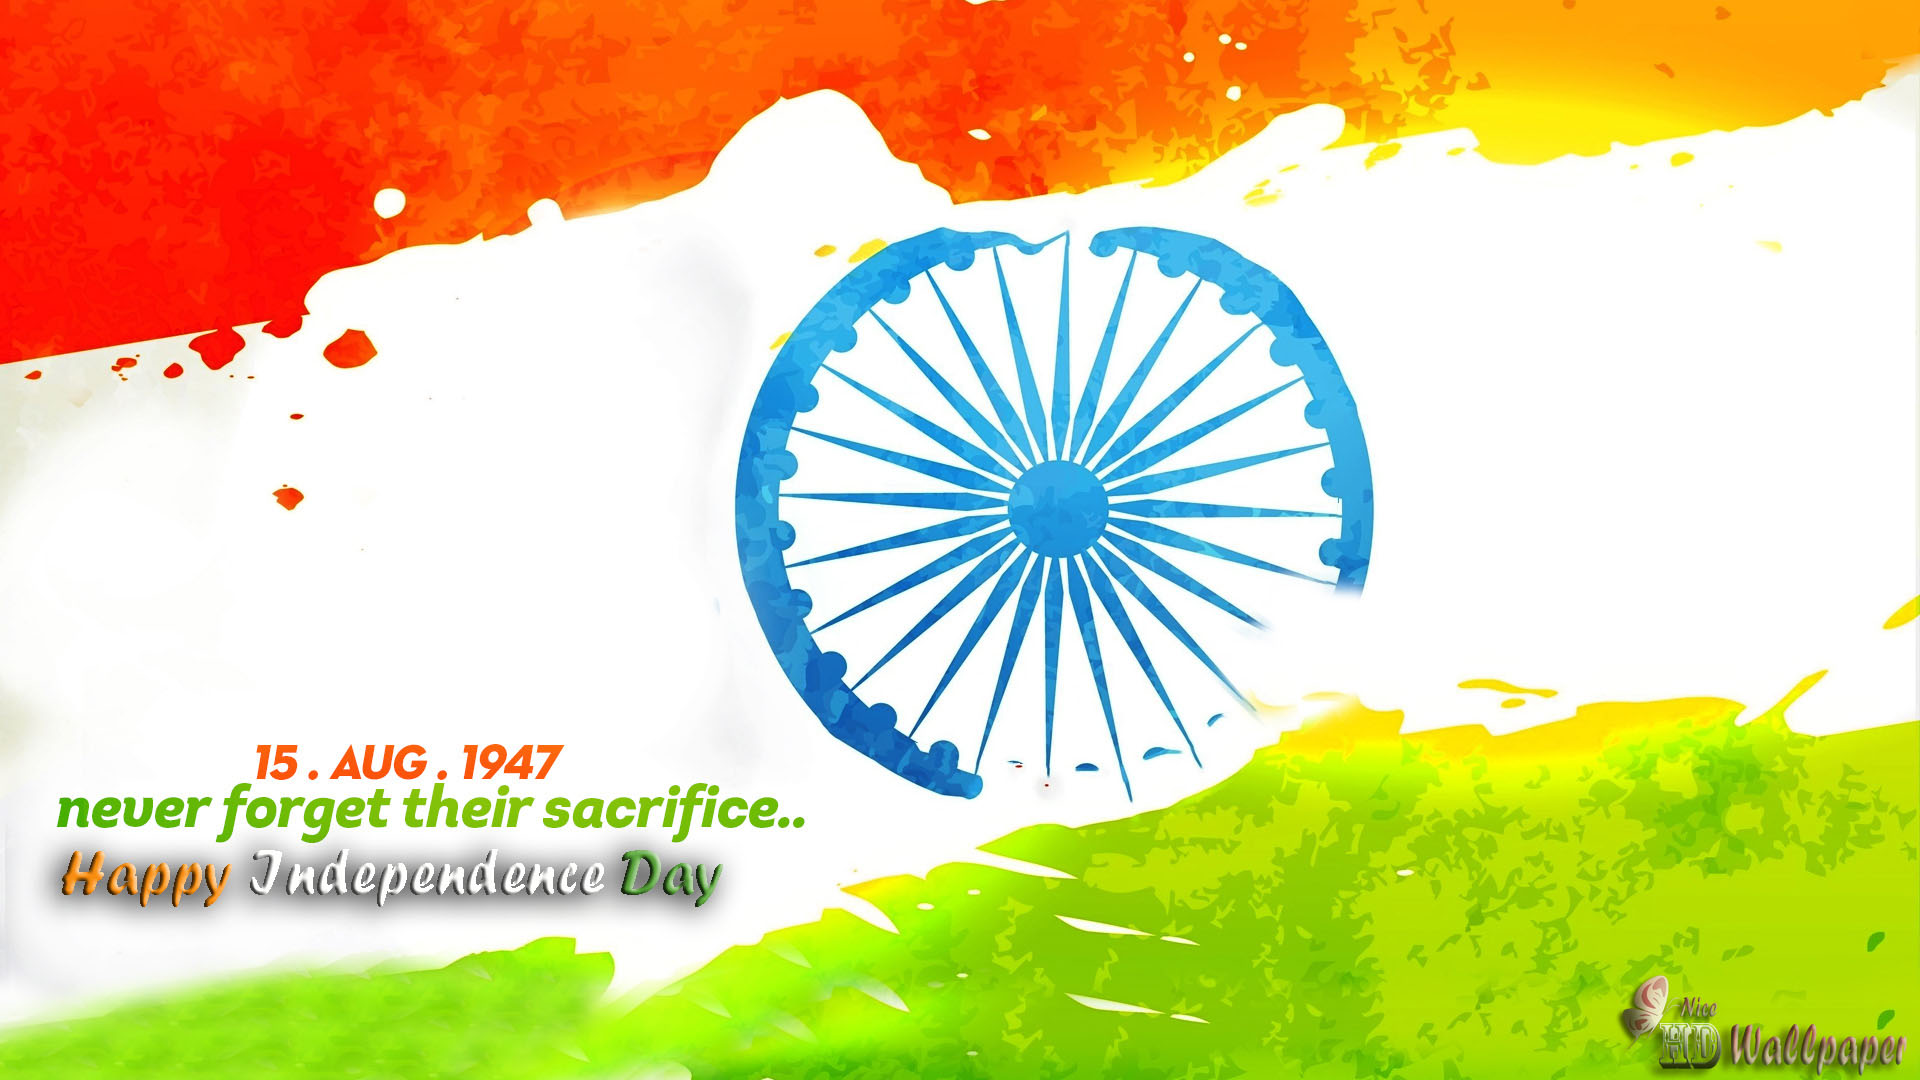 15-augush-1947-happy-independence-day-hd-wallpaper